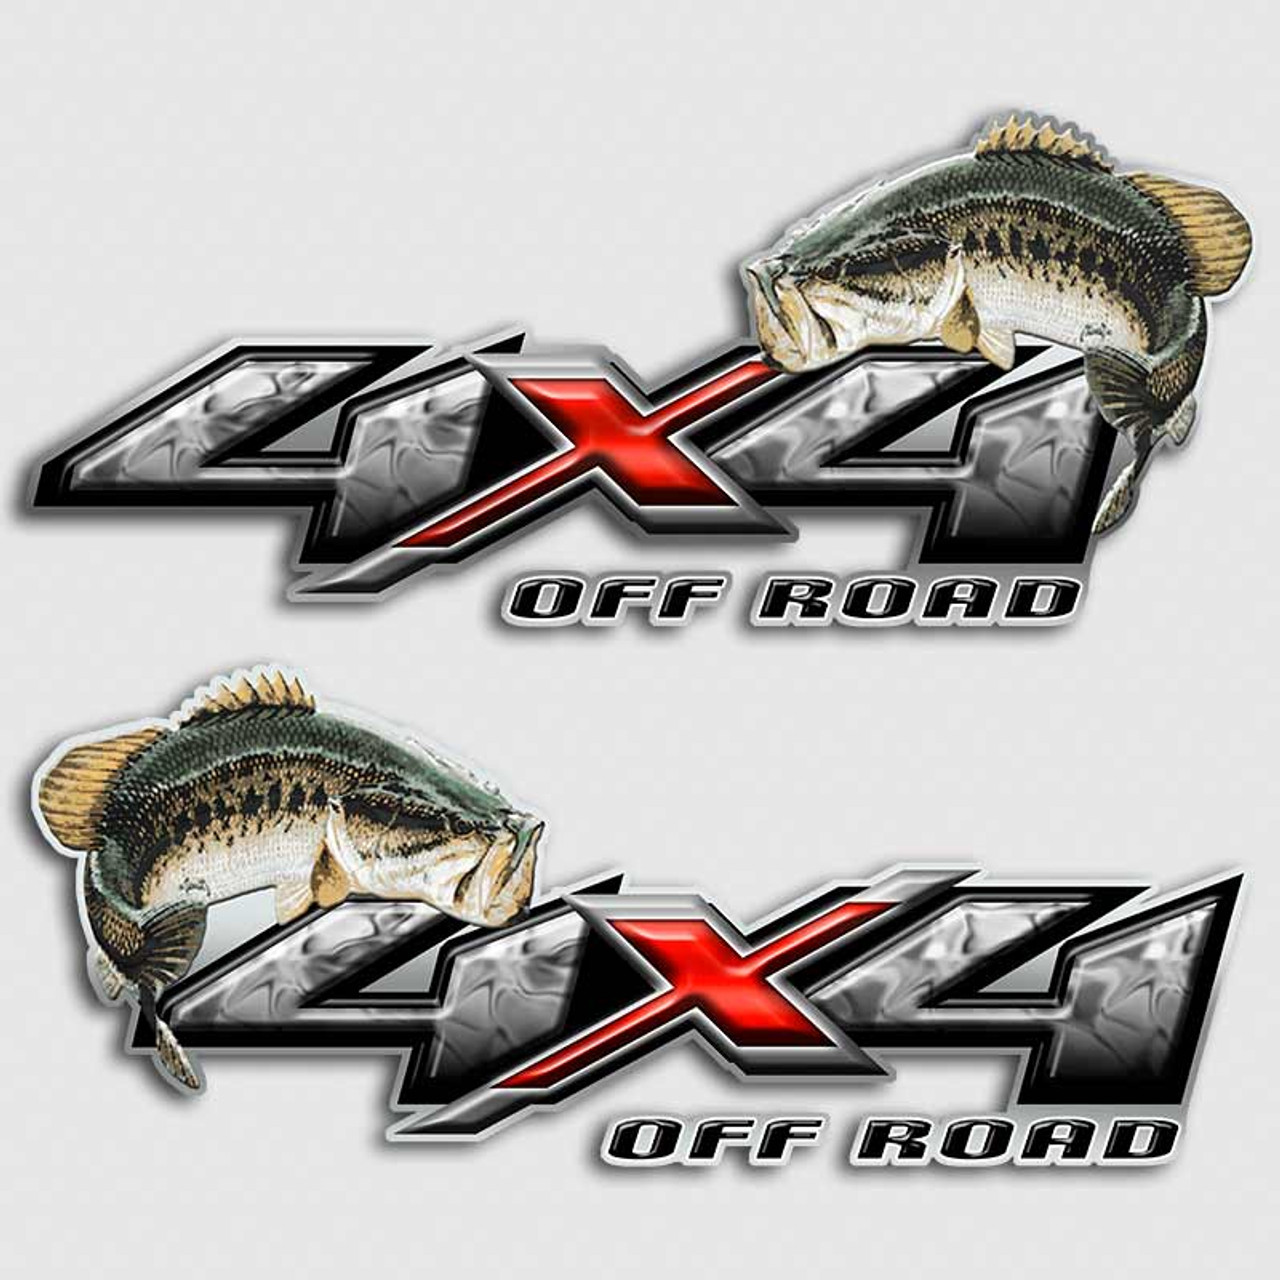 X Bass Fishing Truck Decal Set Off Road Chevy Fish Stickers - 4x4 truck decals